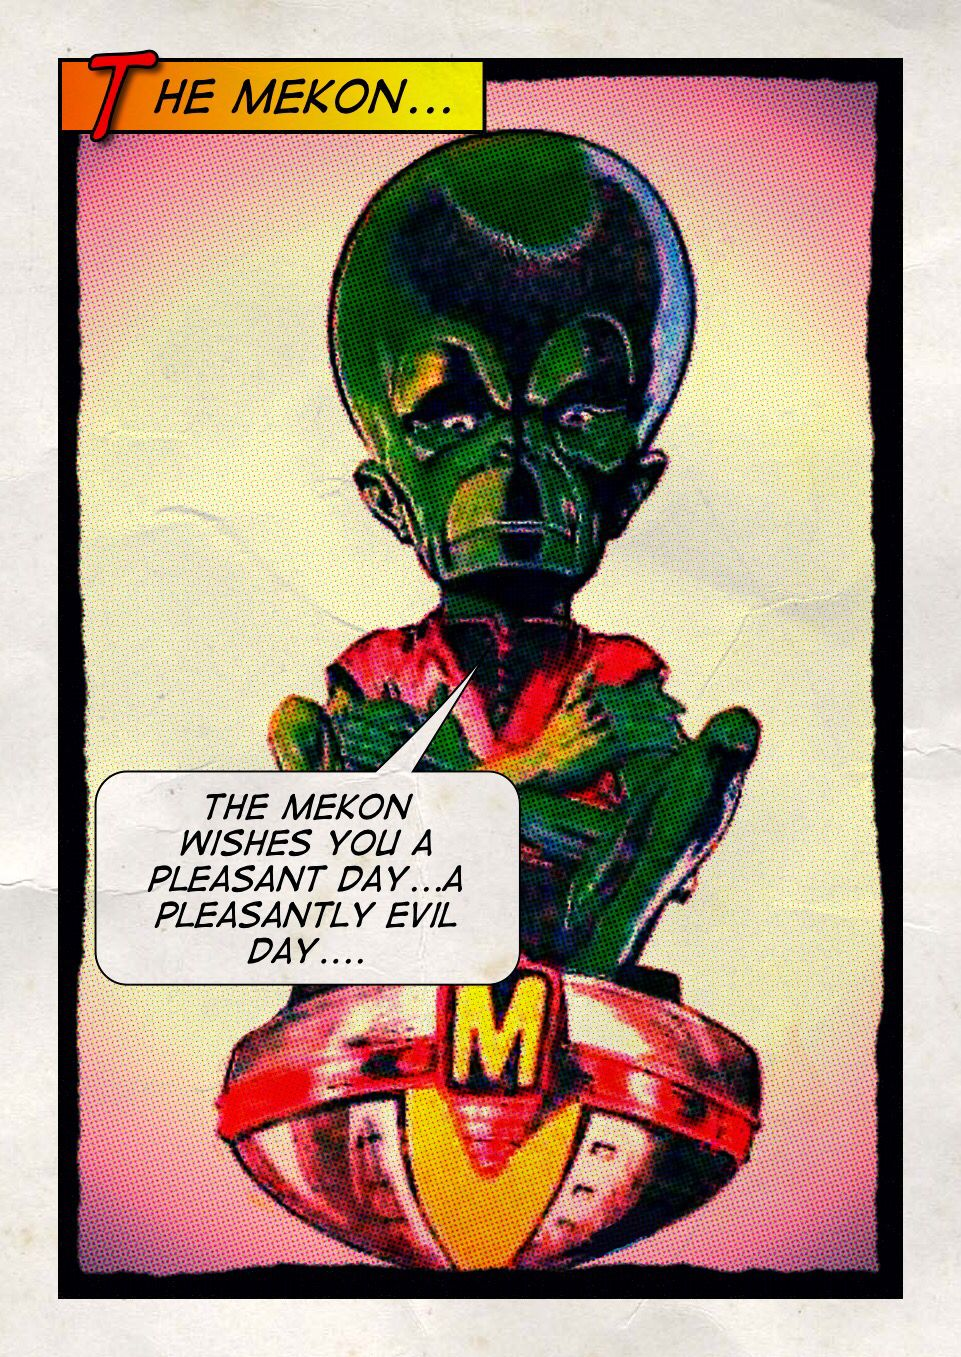 The Mekon is a greeter for Walmart...